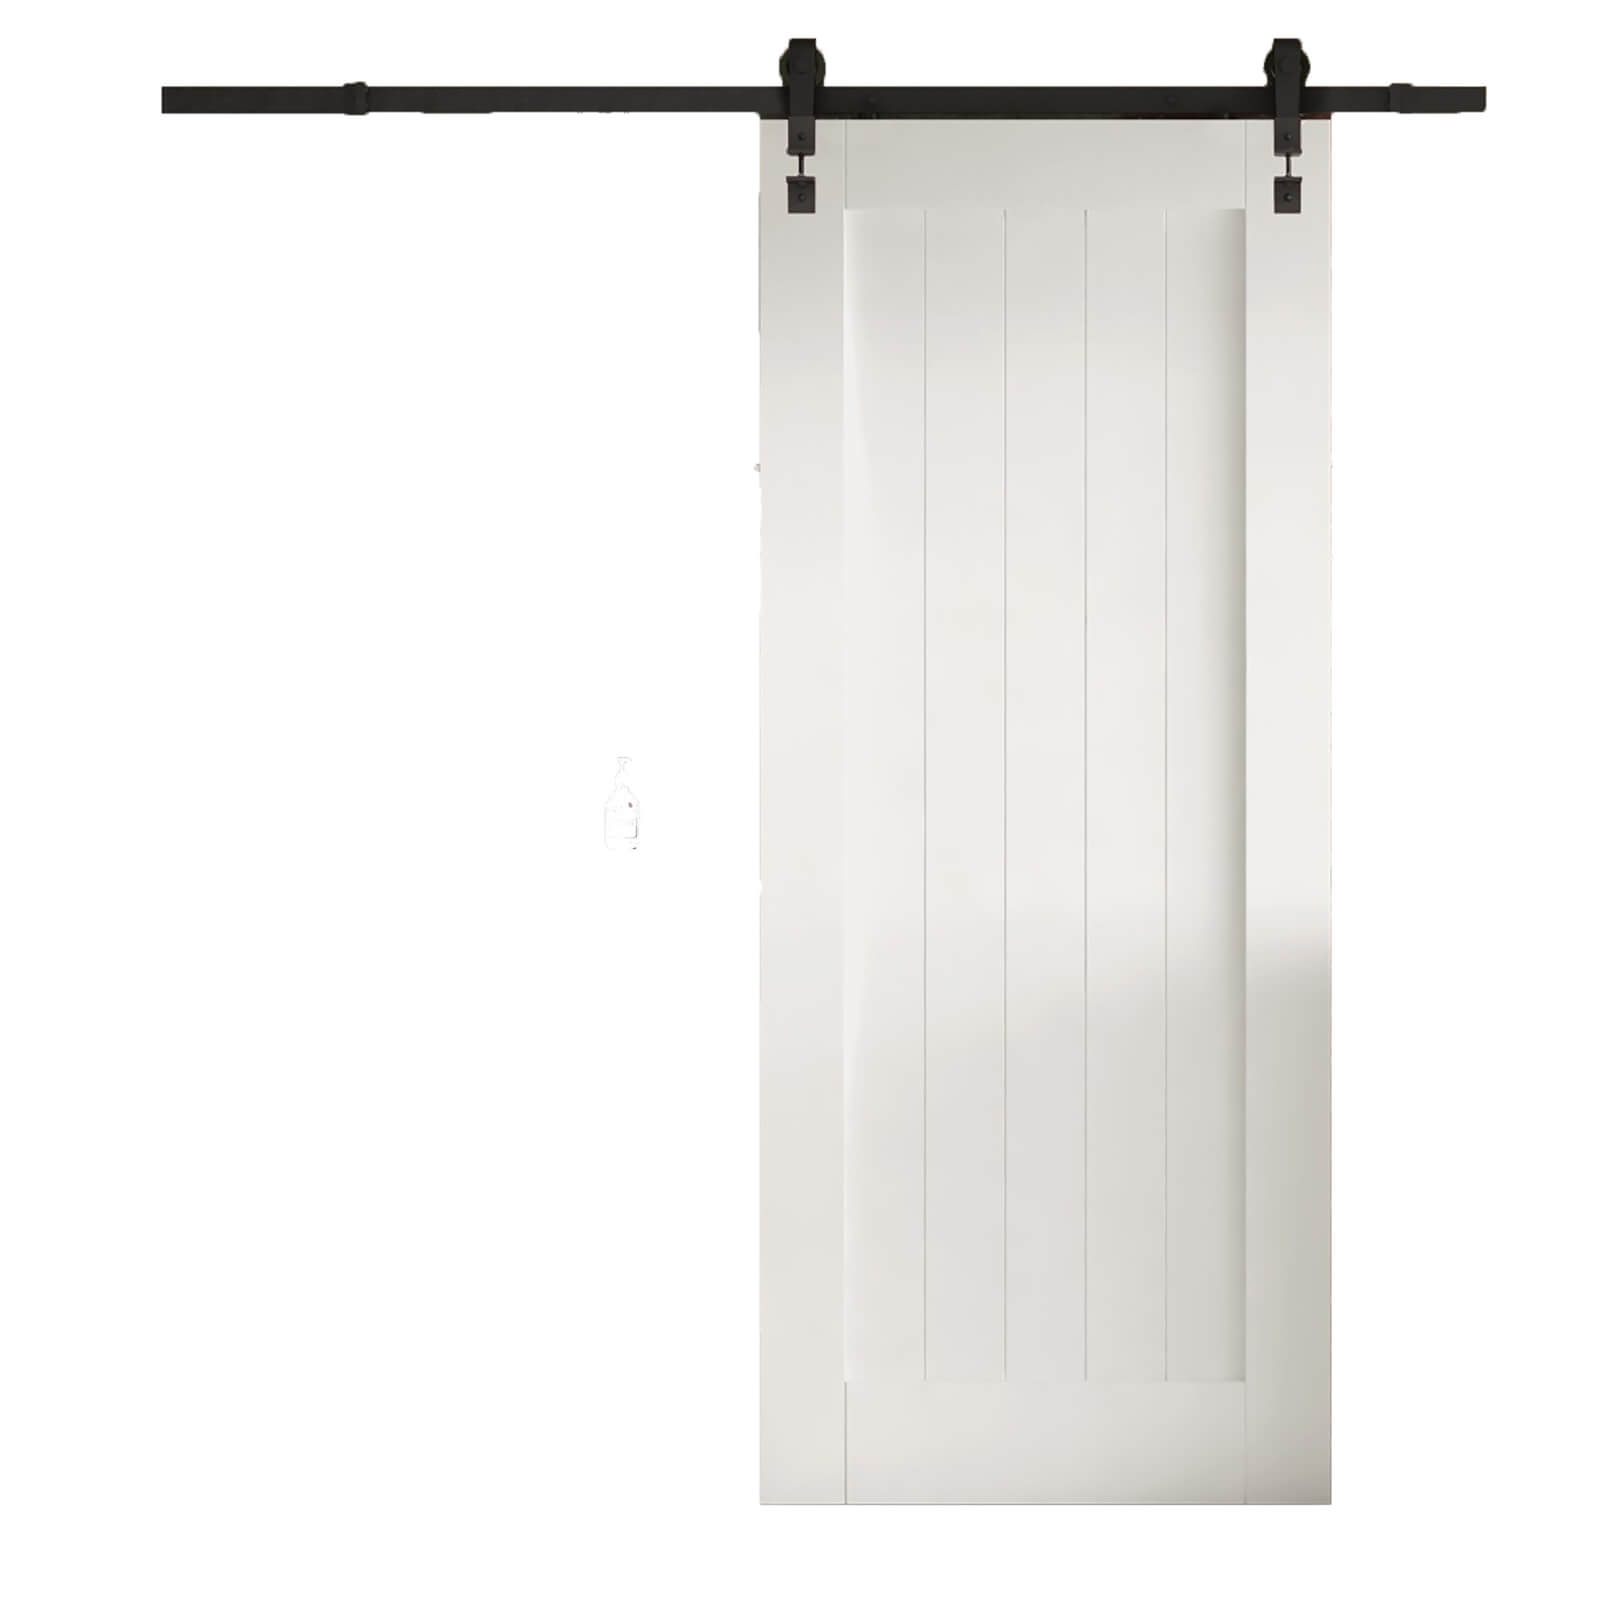 Cottage White Primed Flb Sliding Barn Door With Industrial Track 2073 X 862mm Homebase